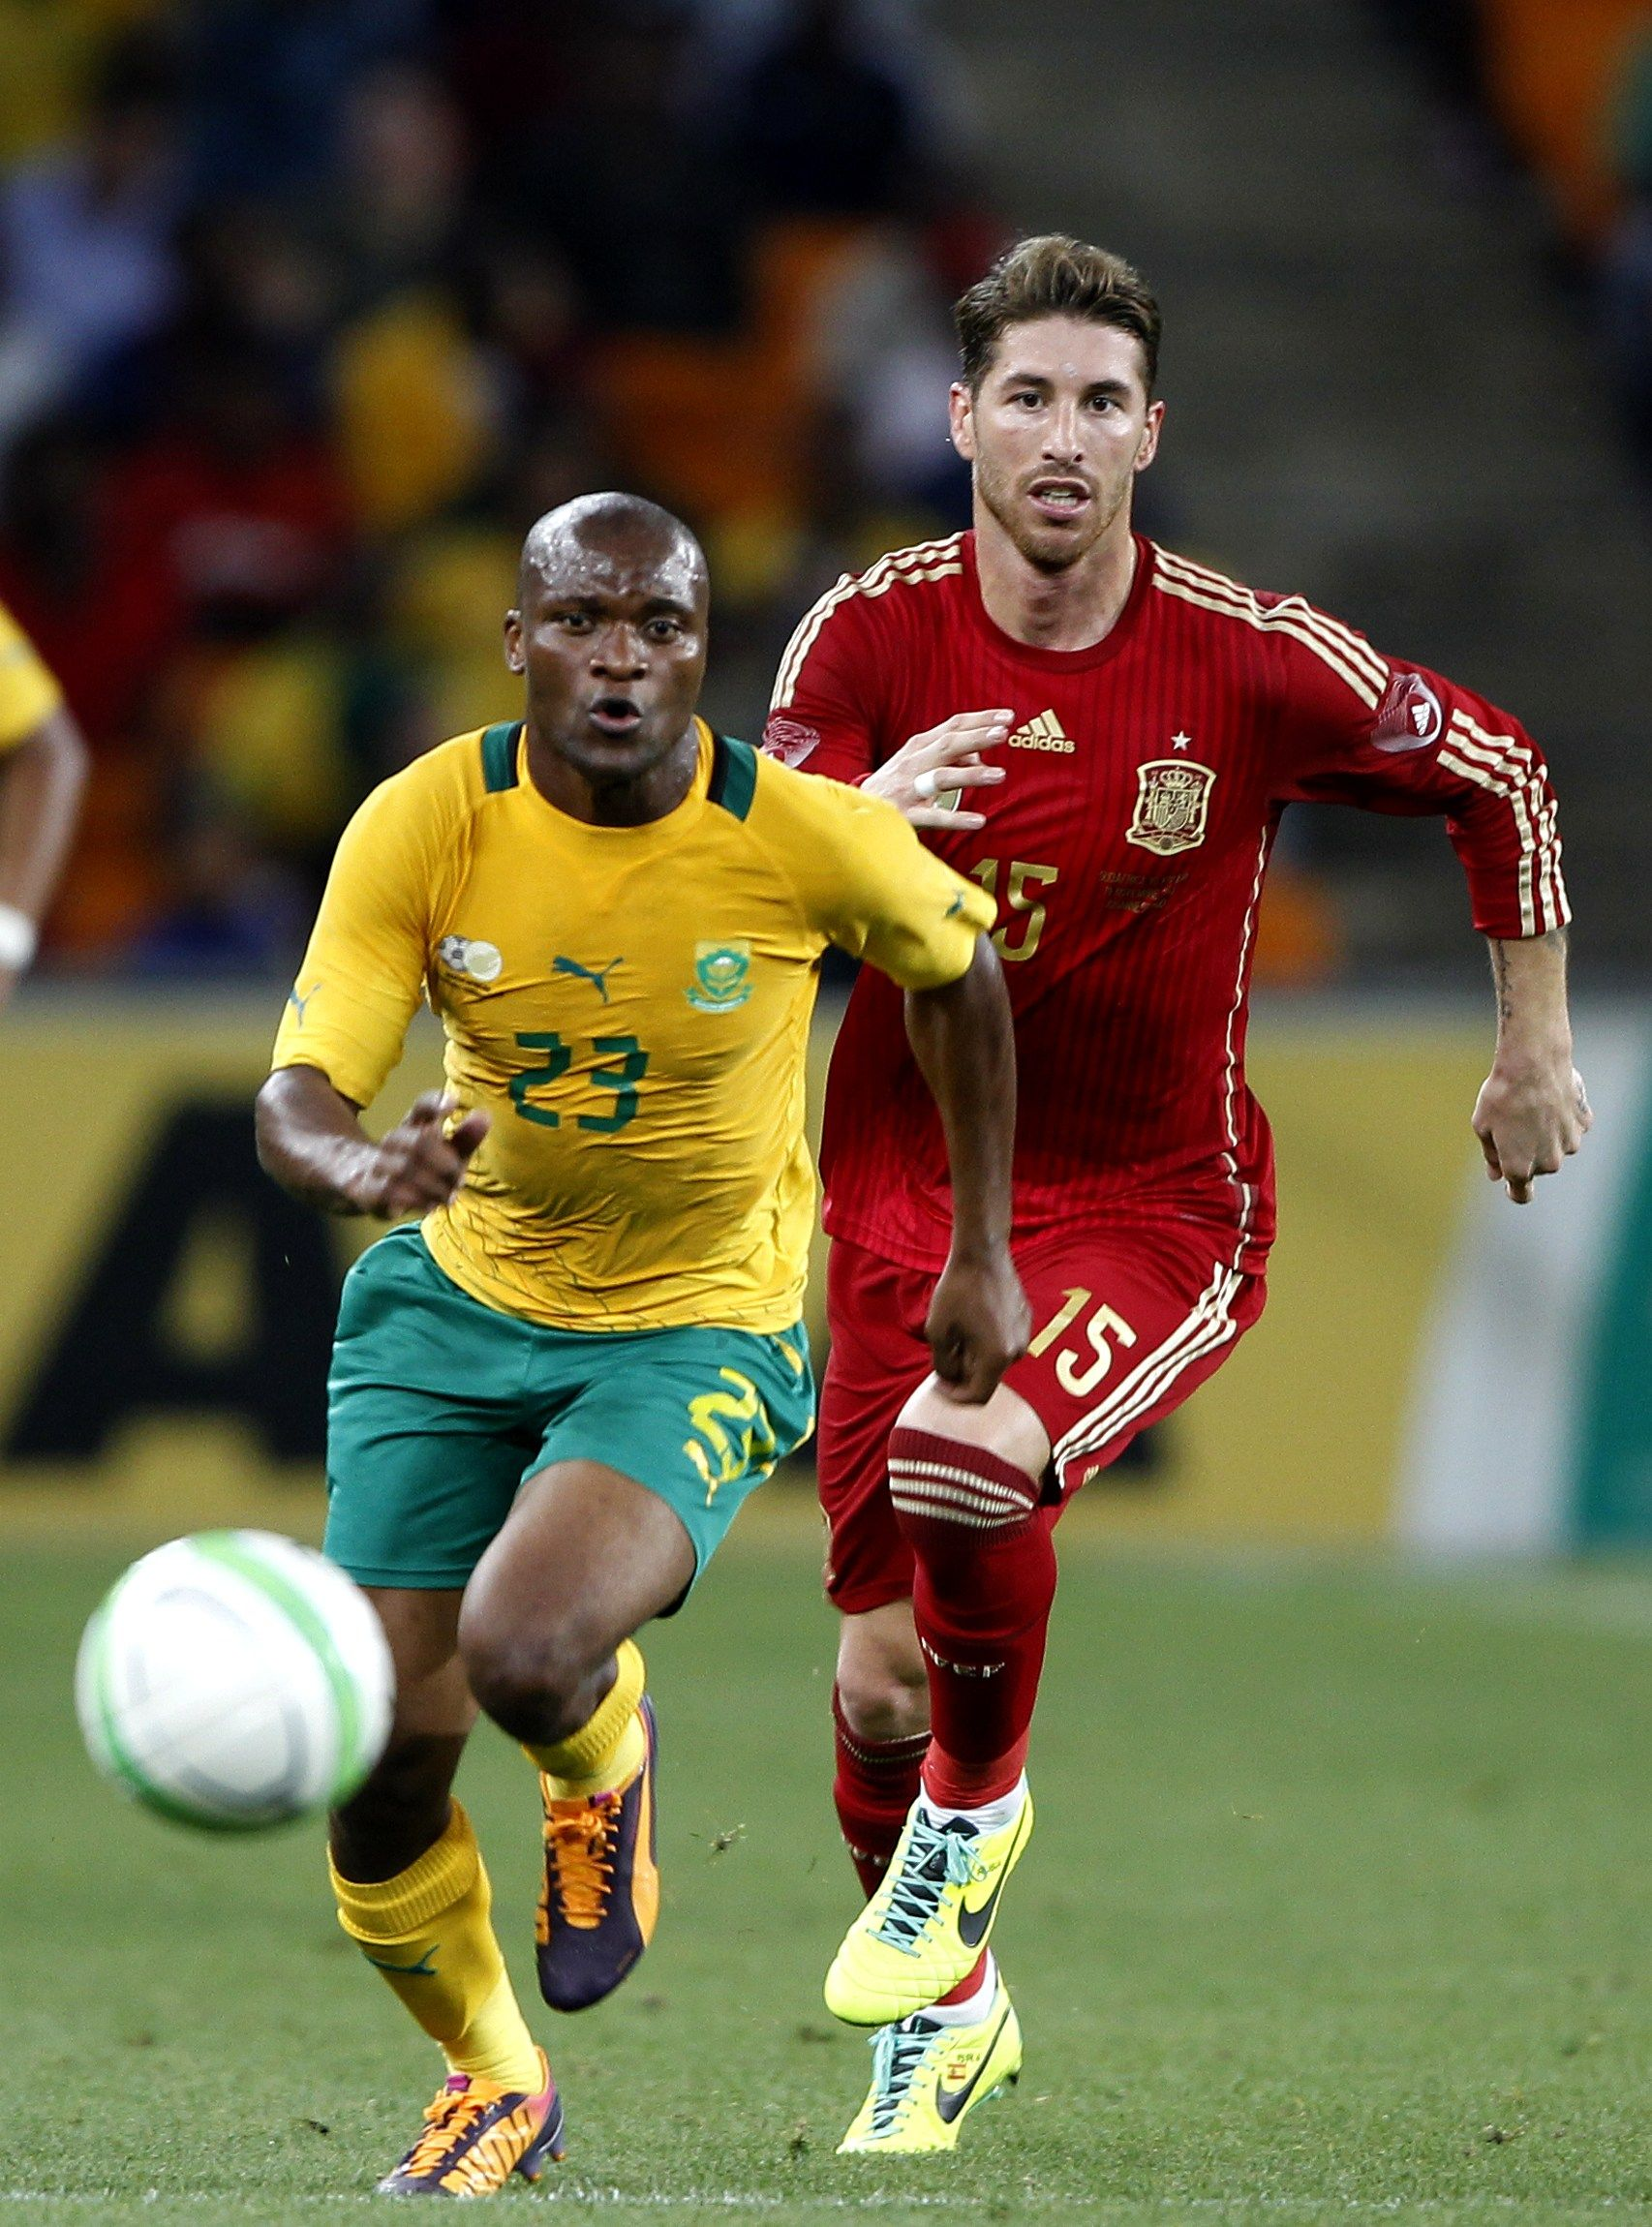 2013 11 19 International Friendly Match Between South Africa And Spain At Soccer City Stadium On November 19 2013 In Jo Soccer City Soccer City Stadium Soccer